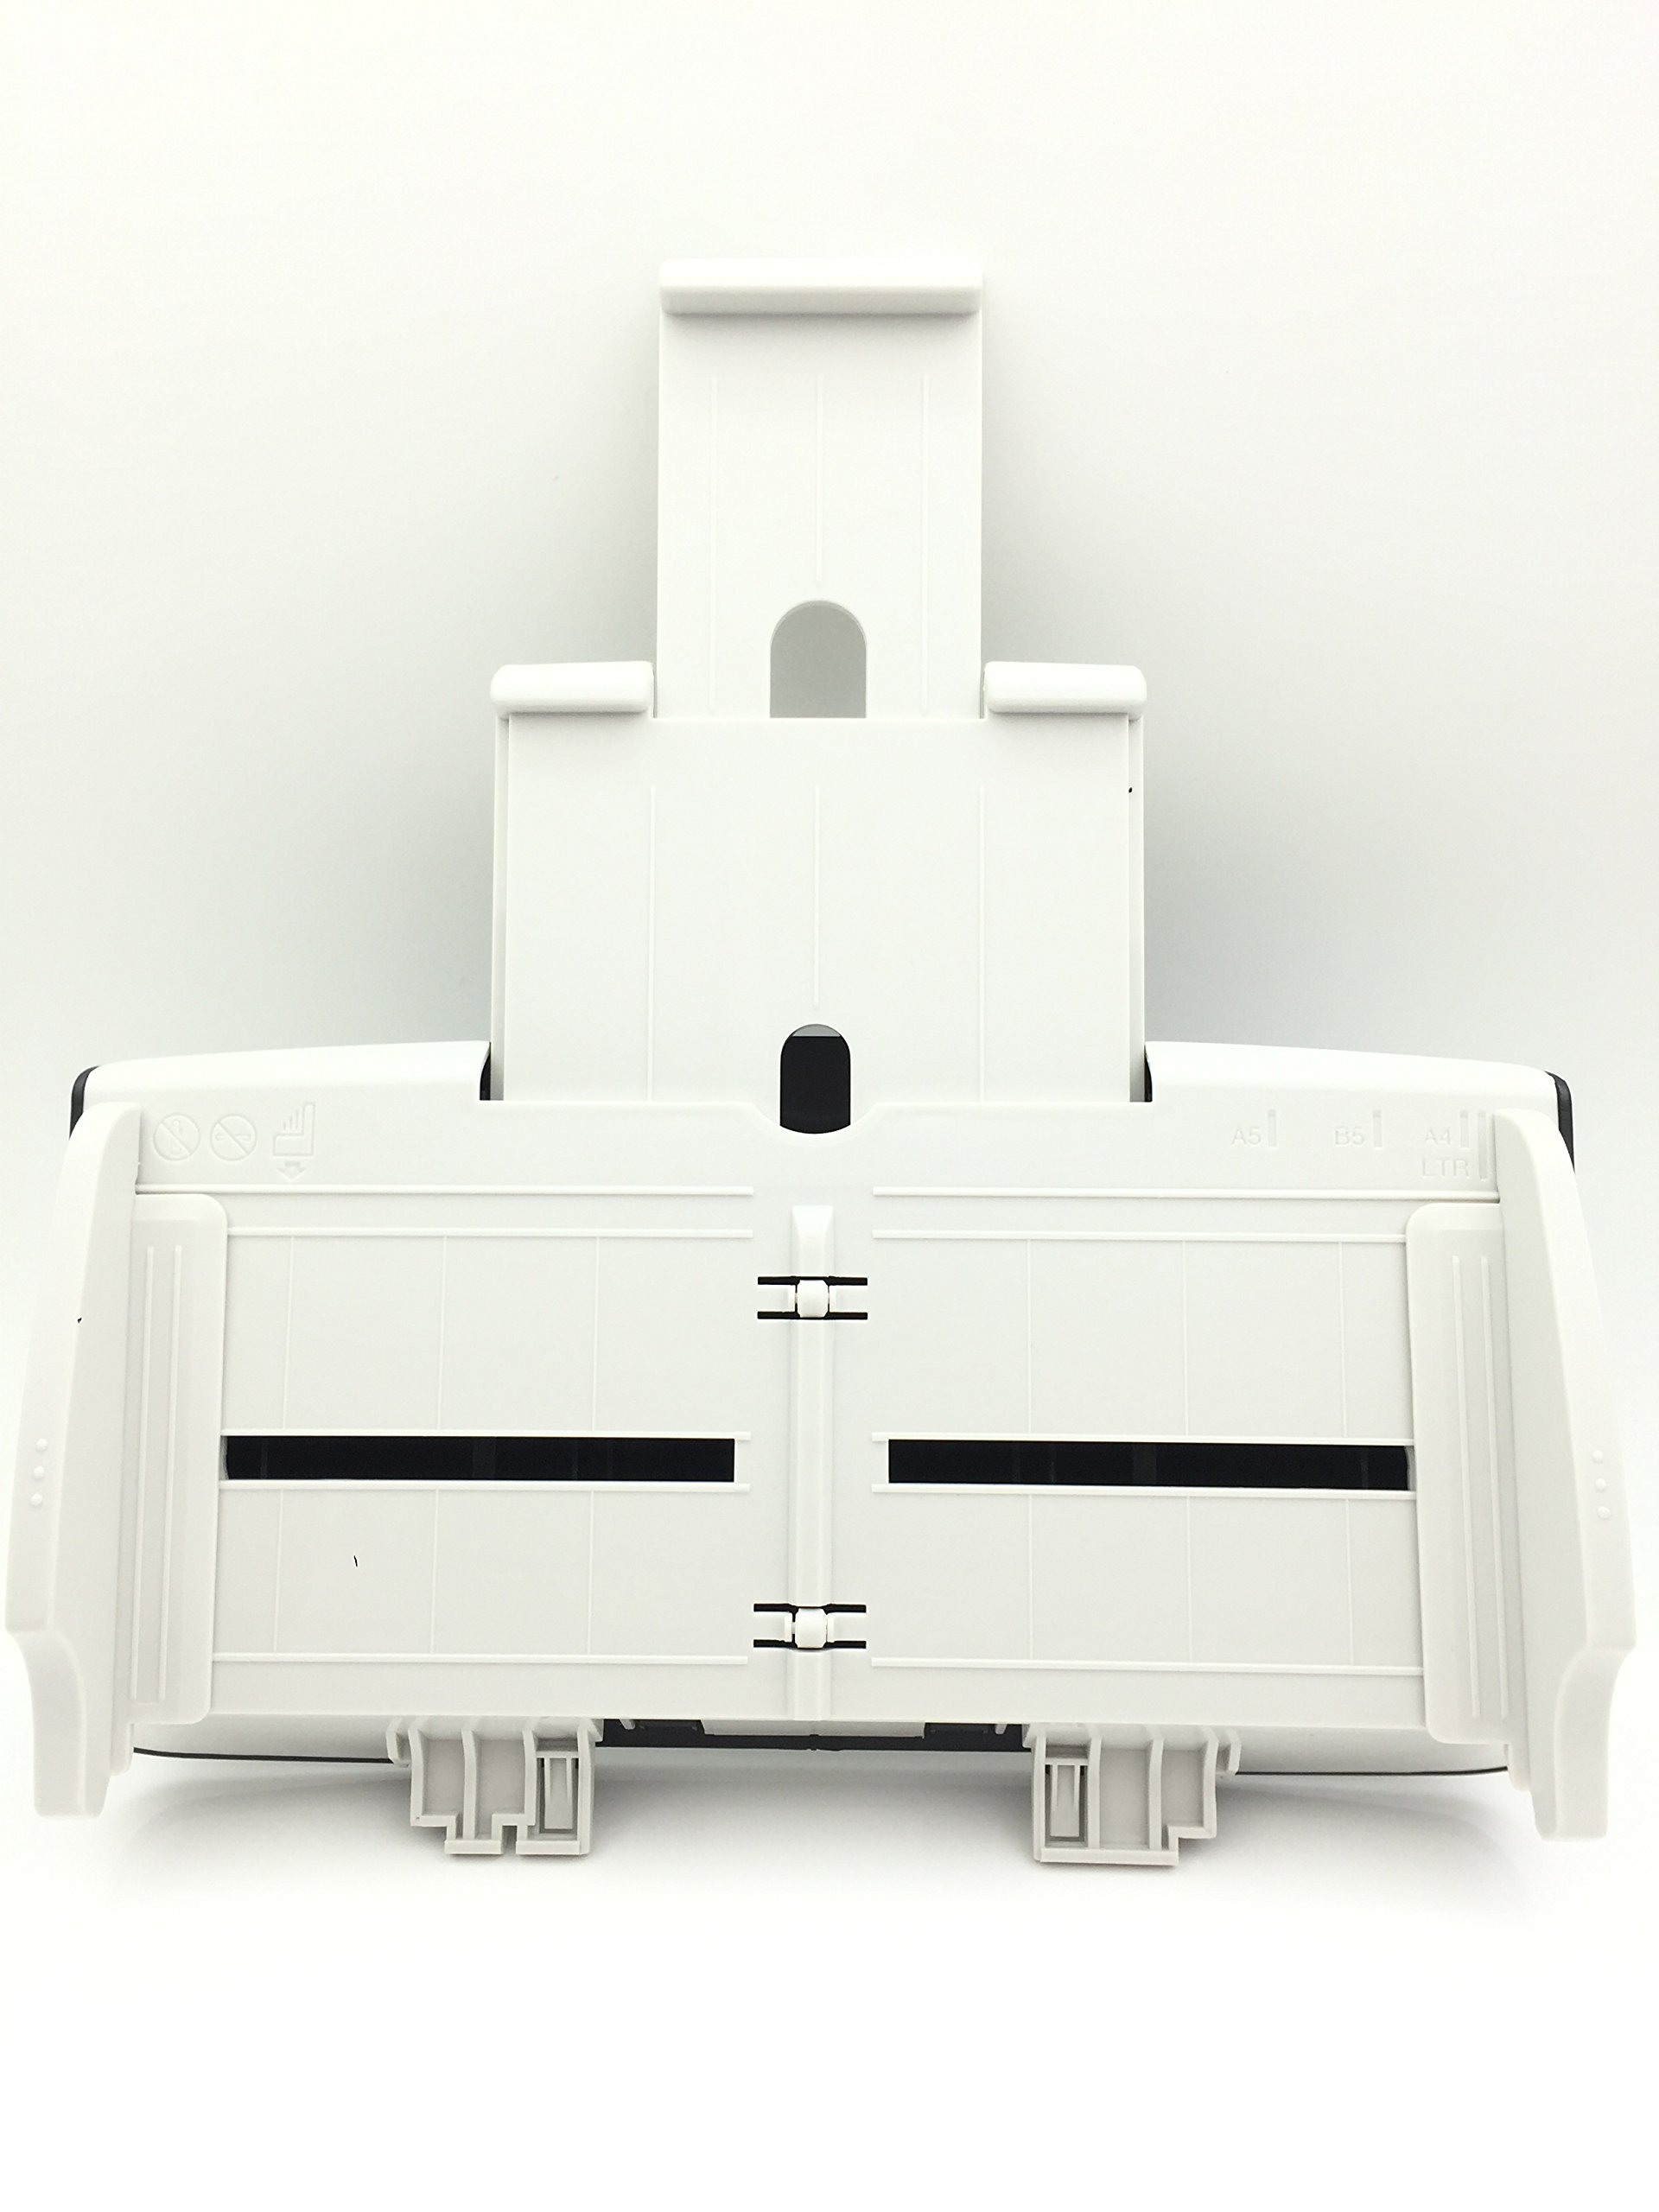 OKLILI PA03670-E985 Input Tray Input Chute Unit Paper Tray Chute Assembly Chuter Unit Compatible with fi-7160 fi-7260 fi-7140 fi-7240 fi-7180 fi-7280 by OKLILI